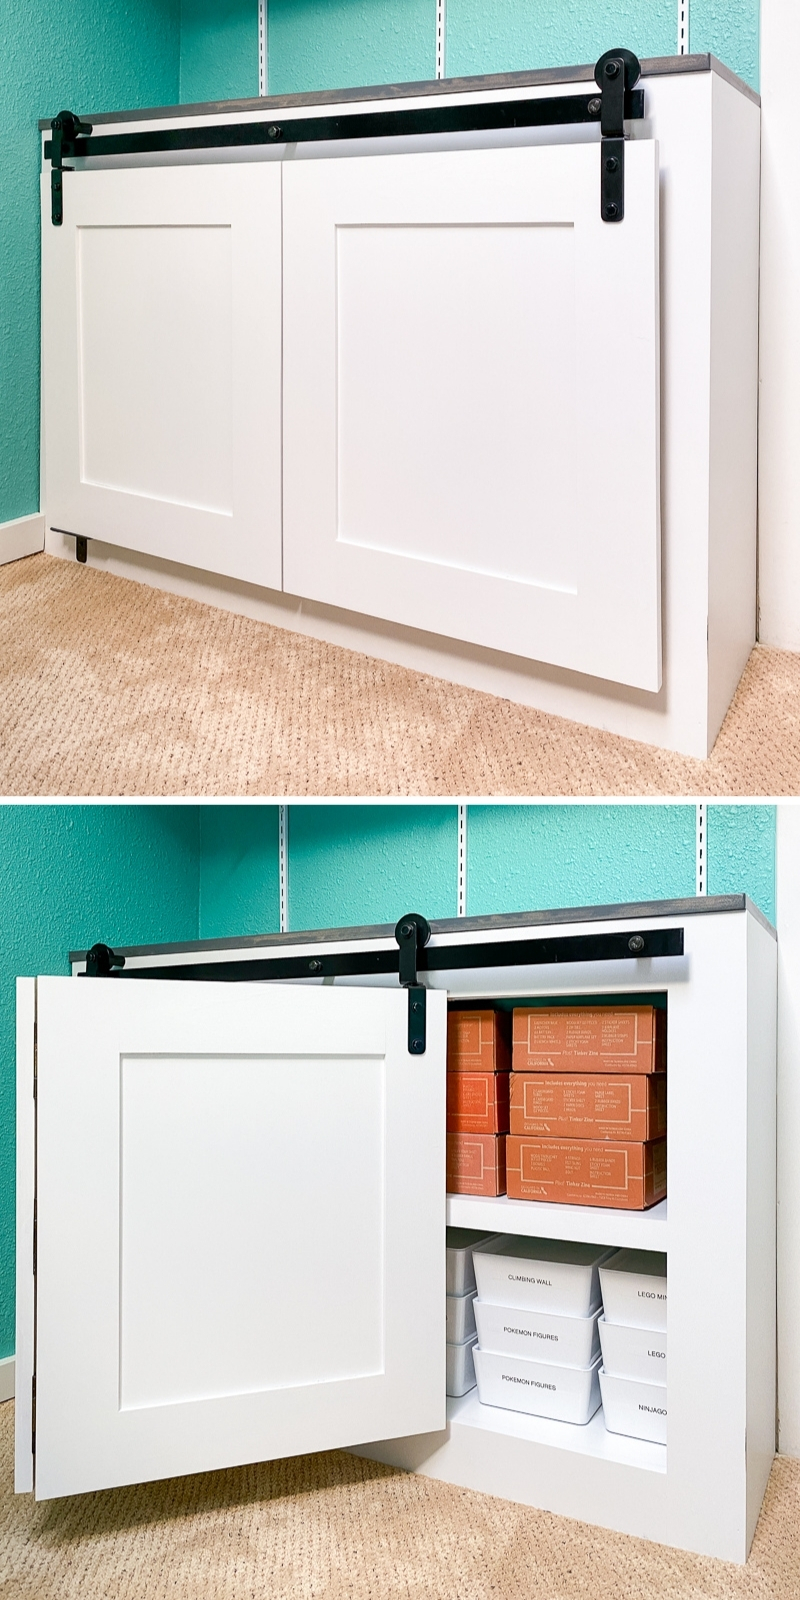 open and closed views of bifold barn doors on cabinet